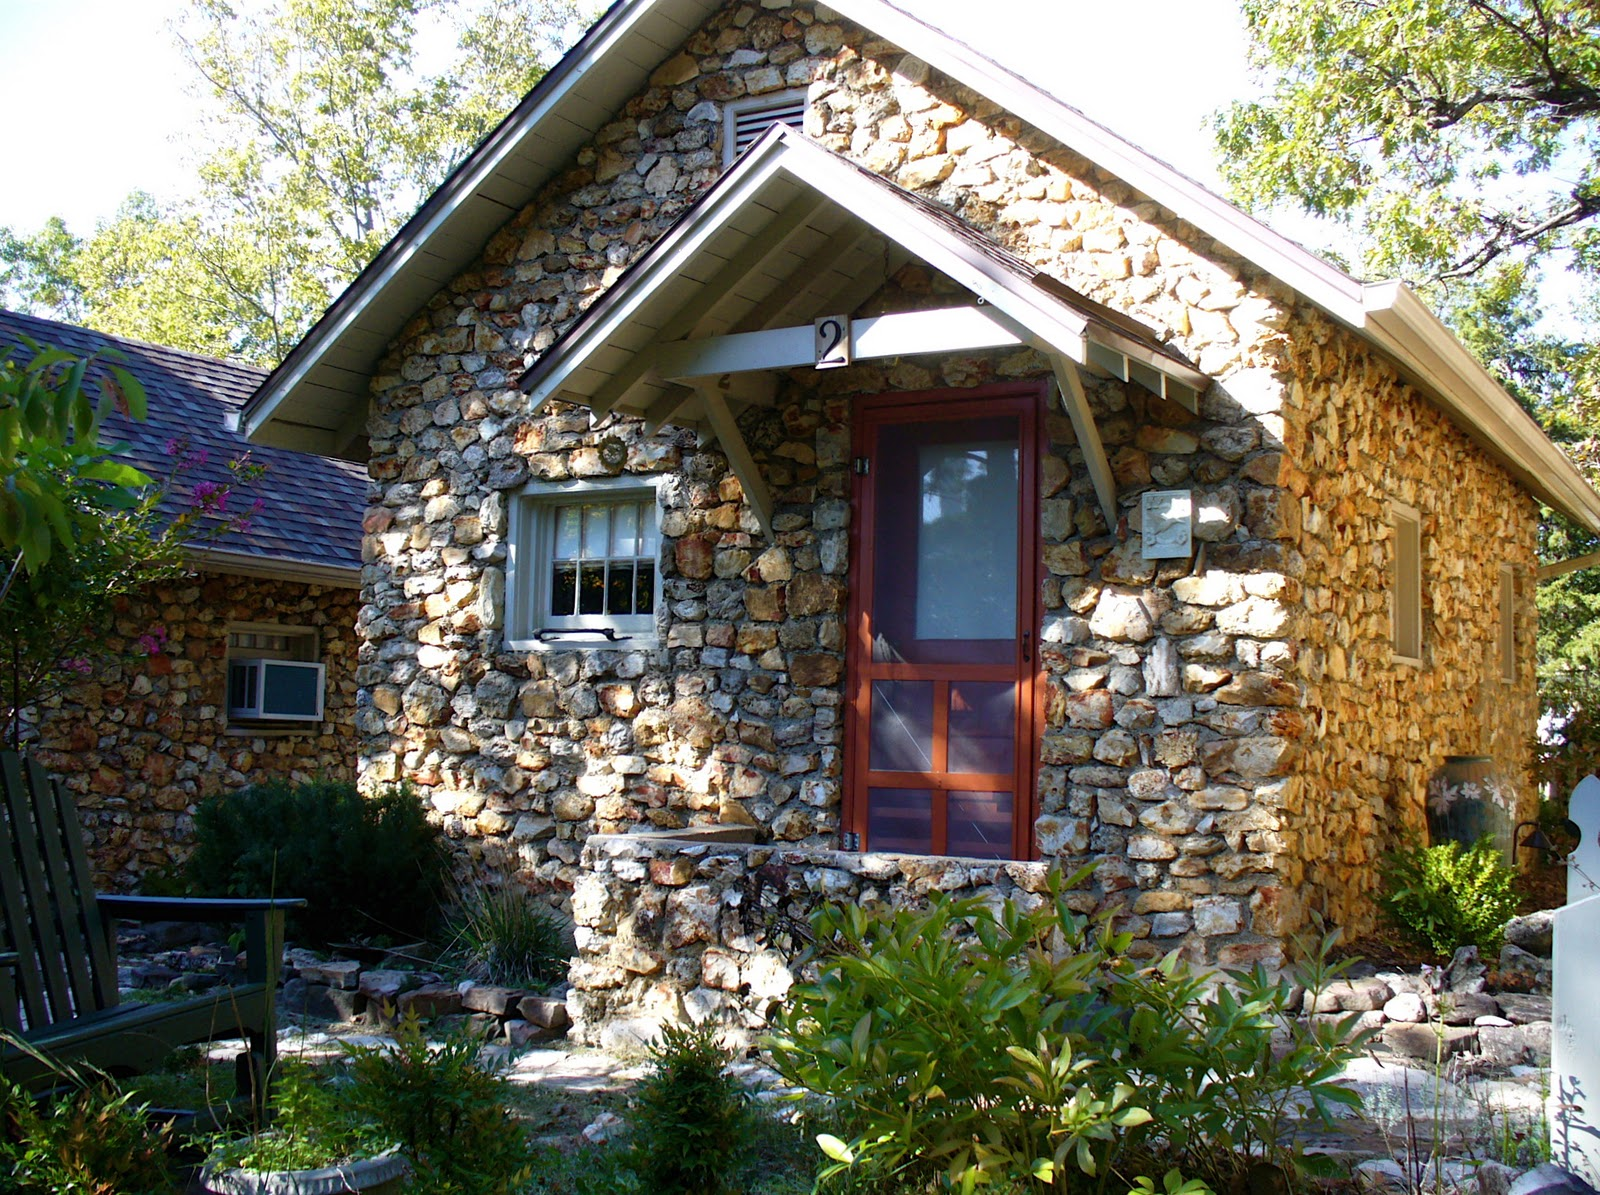 Alt build blog stone buildings in eureka springs ark for How to build a stone cabin